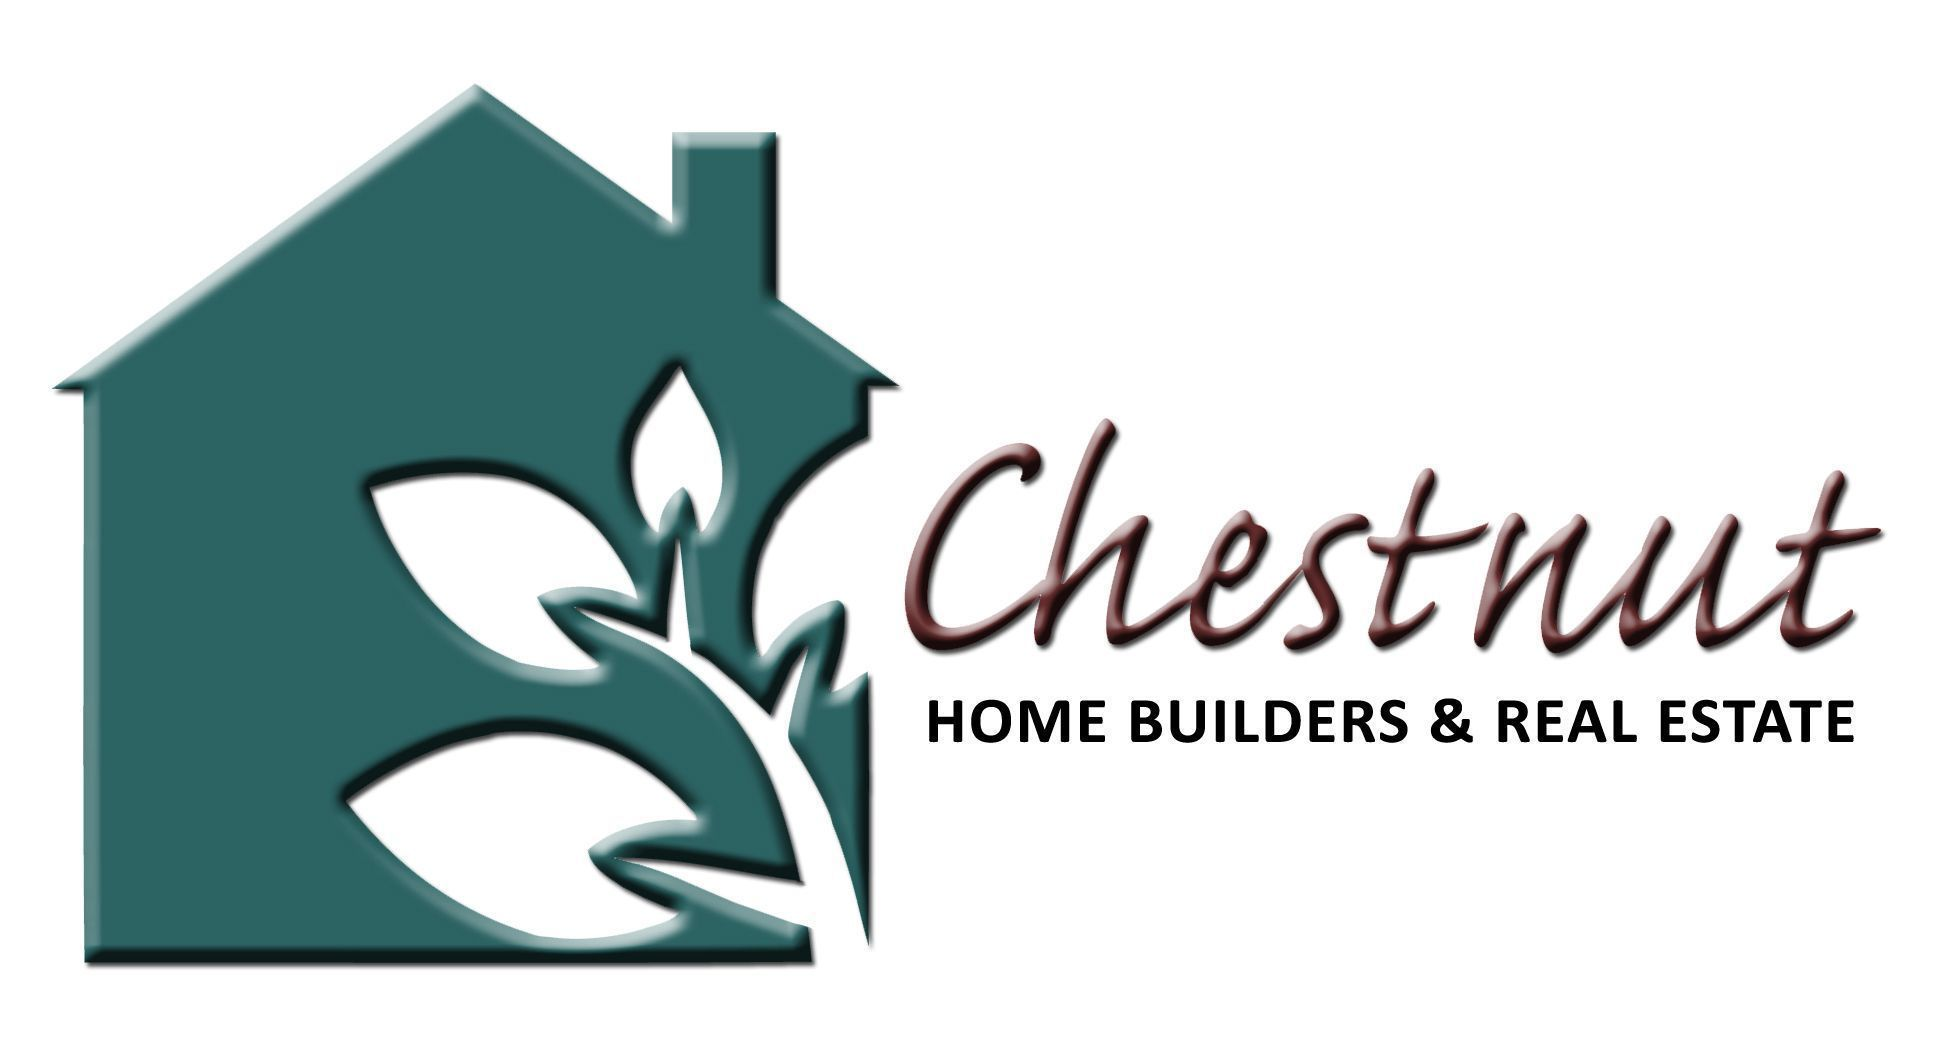 Supporter Chestnut Home Builders